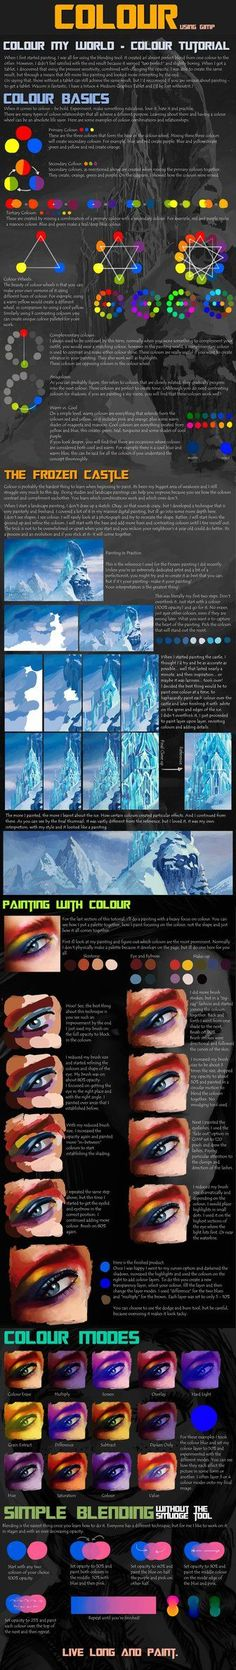 Psychology : The Big Colour Tutorial by nataliebeth on deviantART